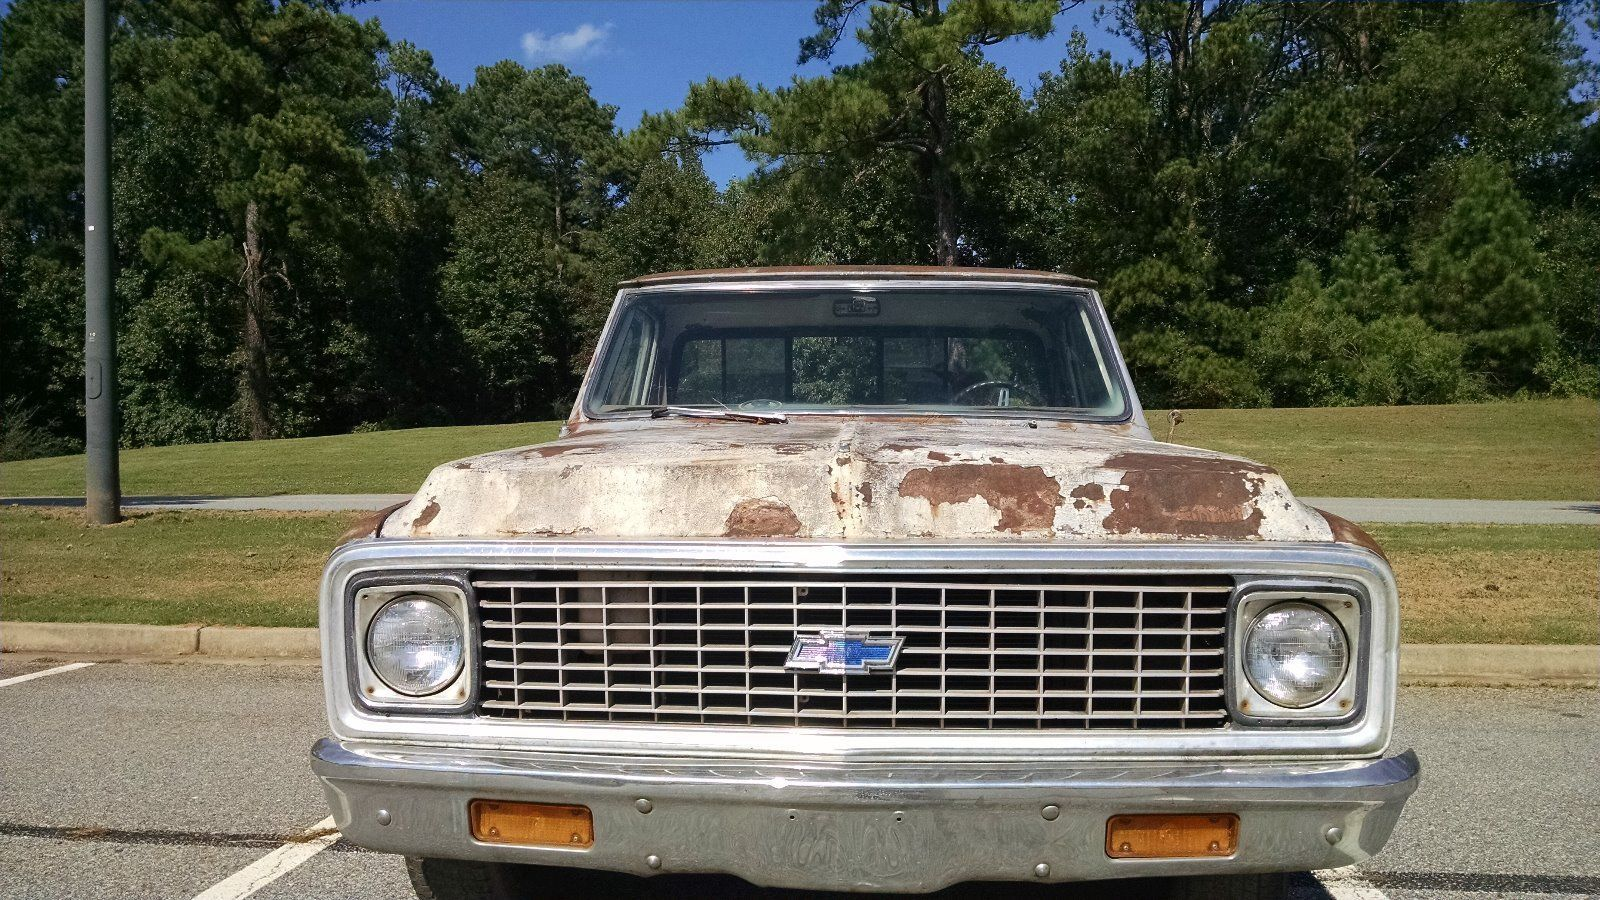 Nice Great 1972 Chevrolet C 10 1972 Chevrolet Cheyenne swb fleetside     Car for Sale  1972 Chevrolet